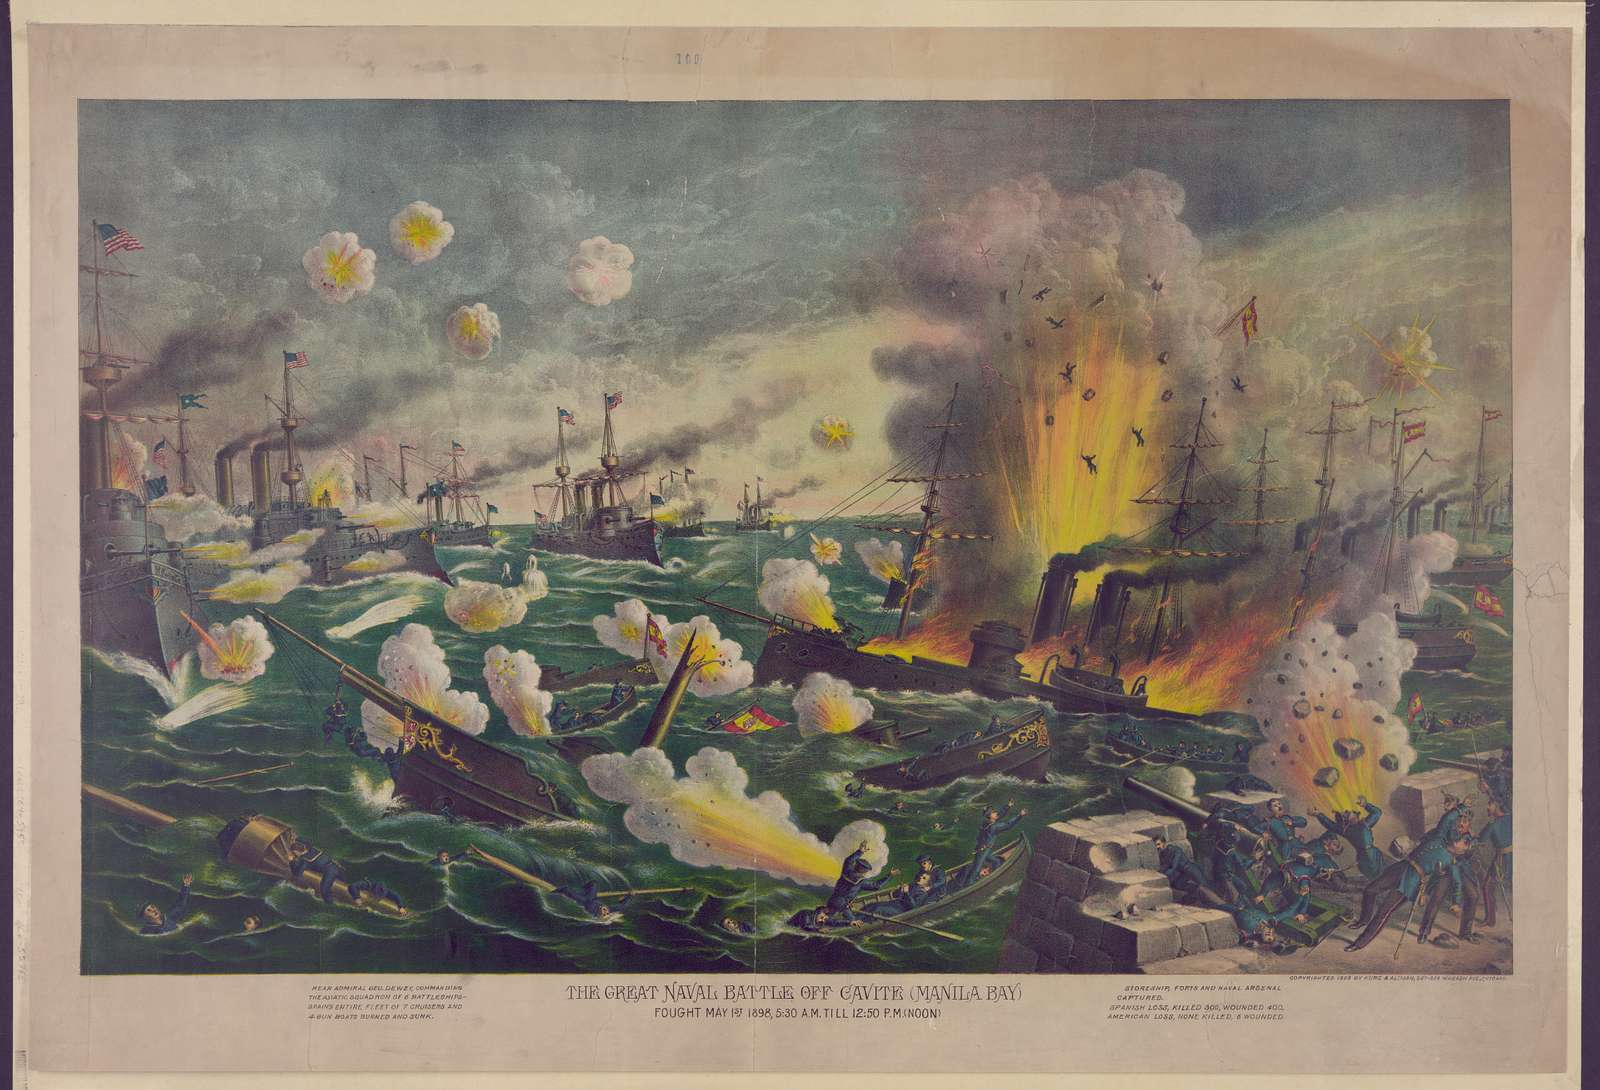 The great naval battle off Cavite (Manila Bay), fought May 1st, 1898, 5:30 A.M. till 12:50 P.M. (noon)